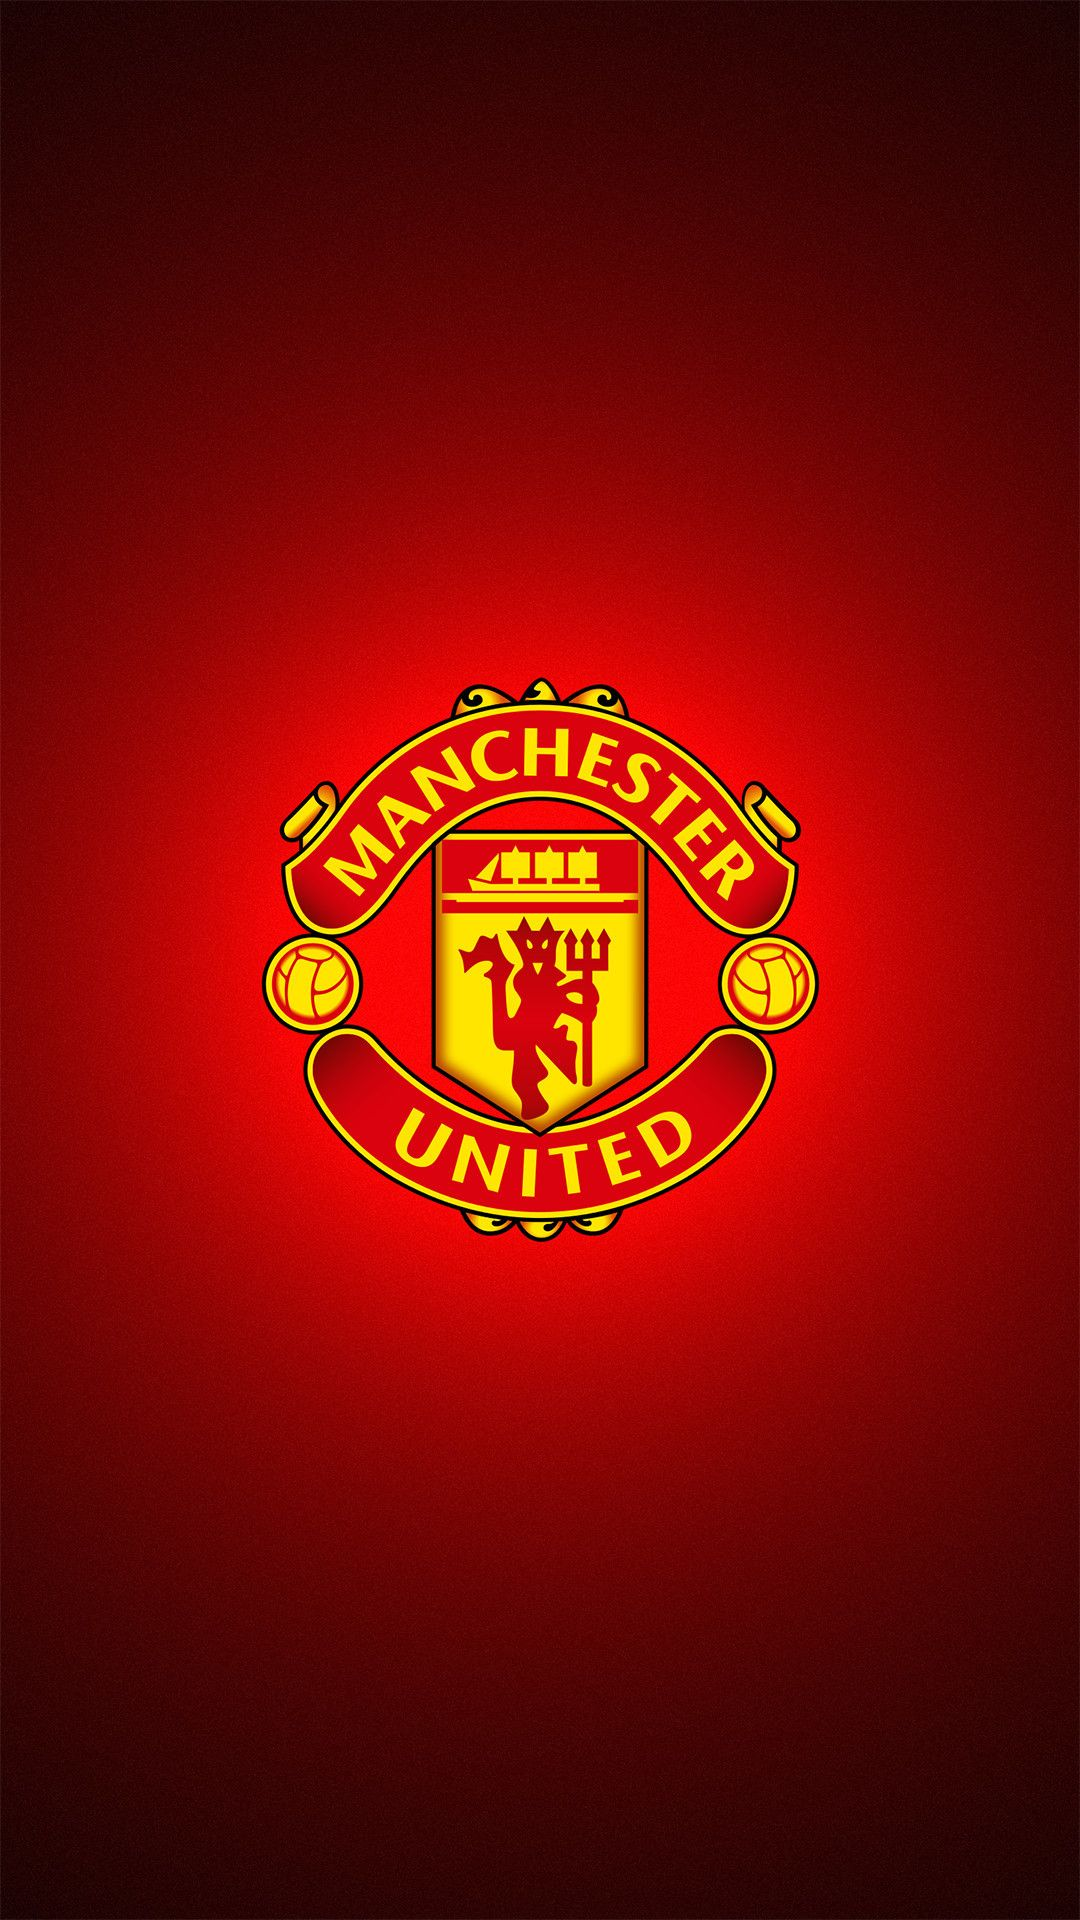 Barcelona Wallpaper Home Screen Snowman Wallpapers In 2020 Manchester United Wallpapers Iphone Manchester United Logo Manchester United Wallpaper